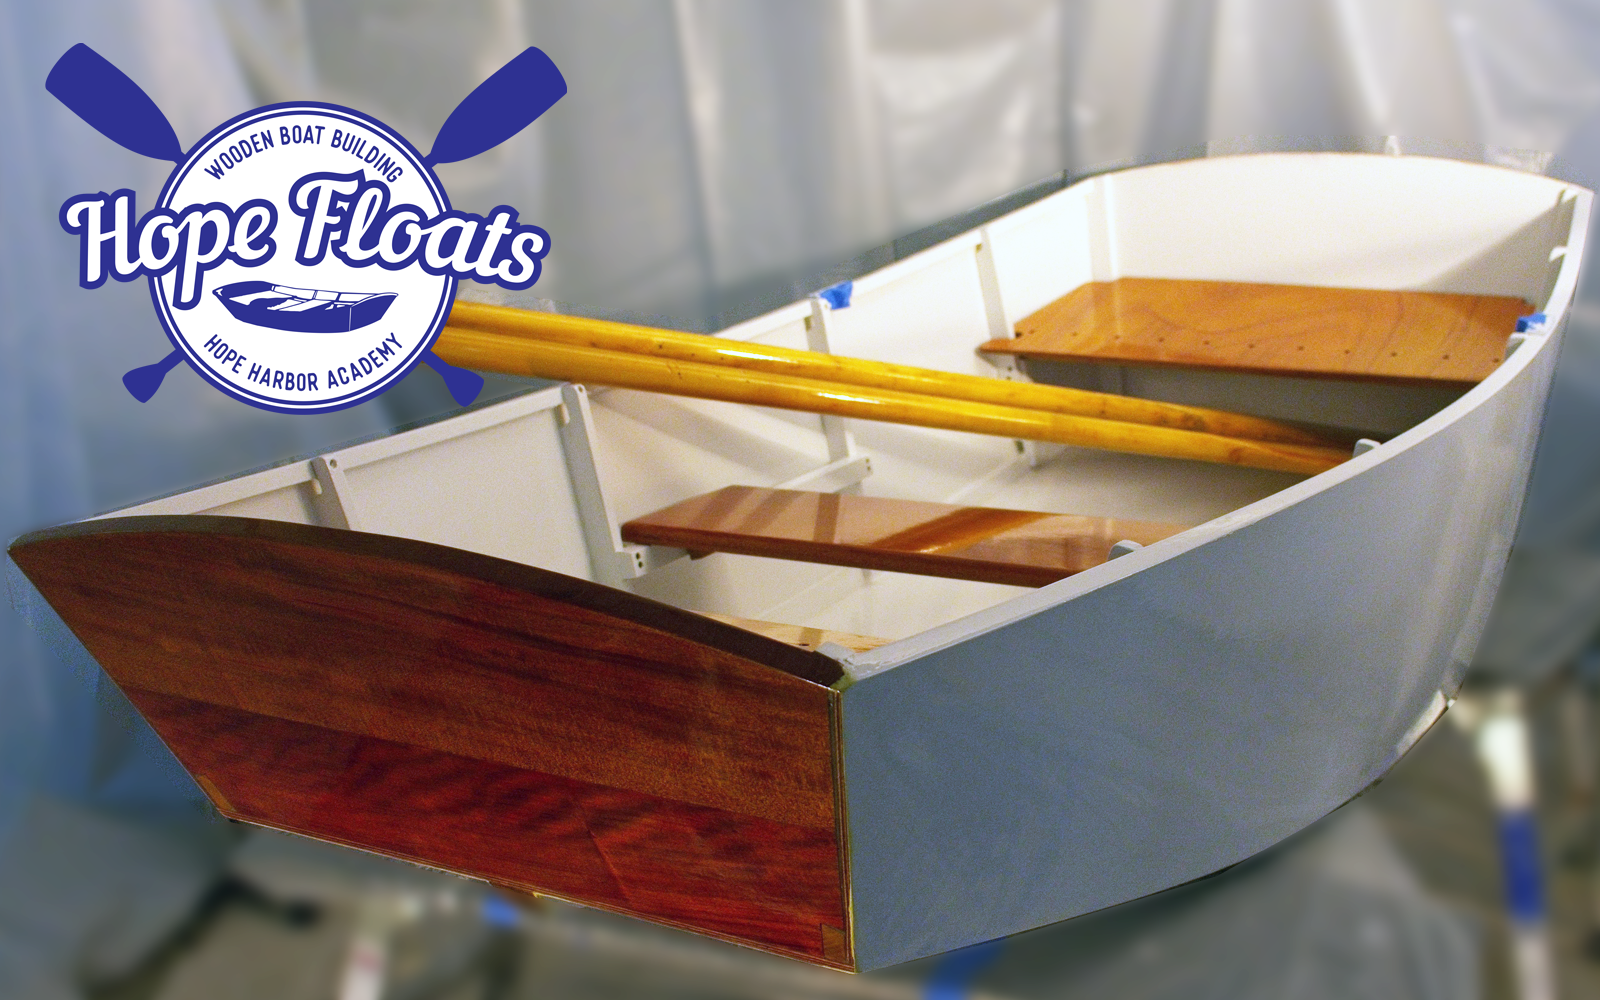 BUY YOUR TICKETS TODAY FOR YOUR CHANCE TO OWN THE HHA HOPE FLOATS BOAT! image